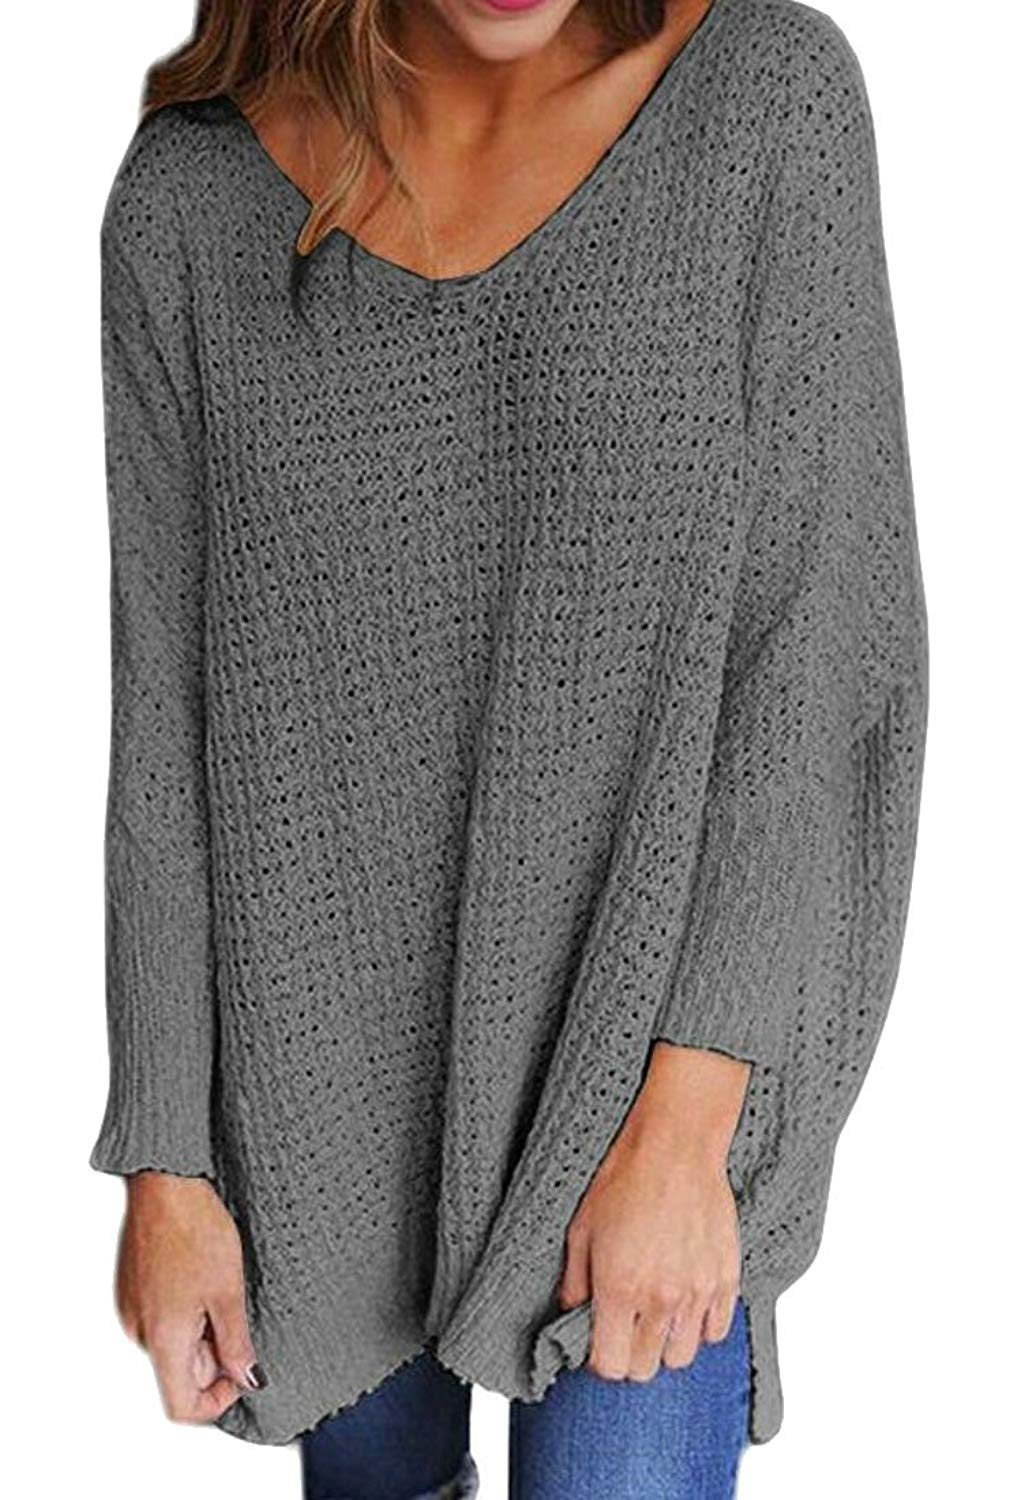 Alion Womens Classic Casual Fashion Long Sleeve Round Neck Knit Pullover Sweater